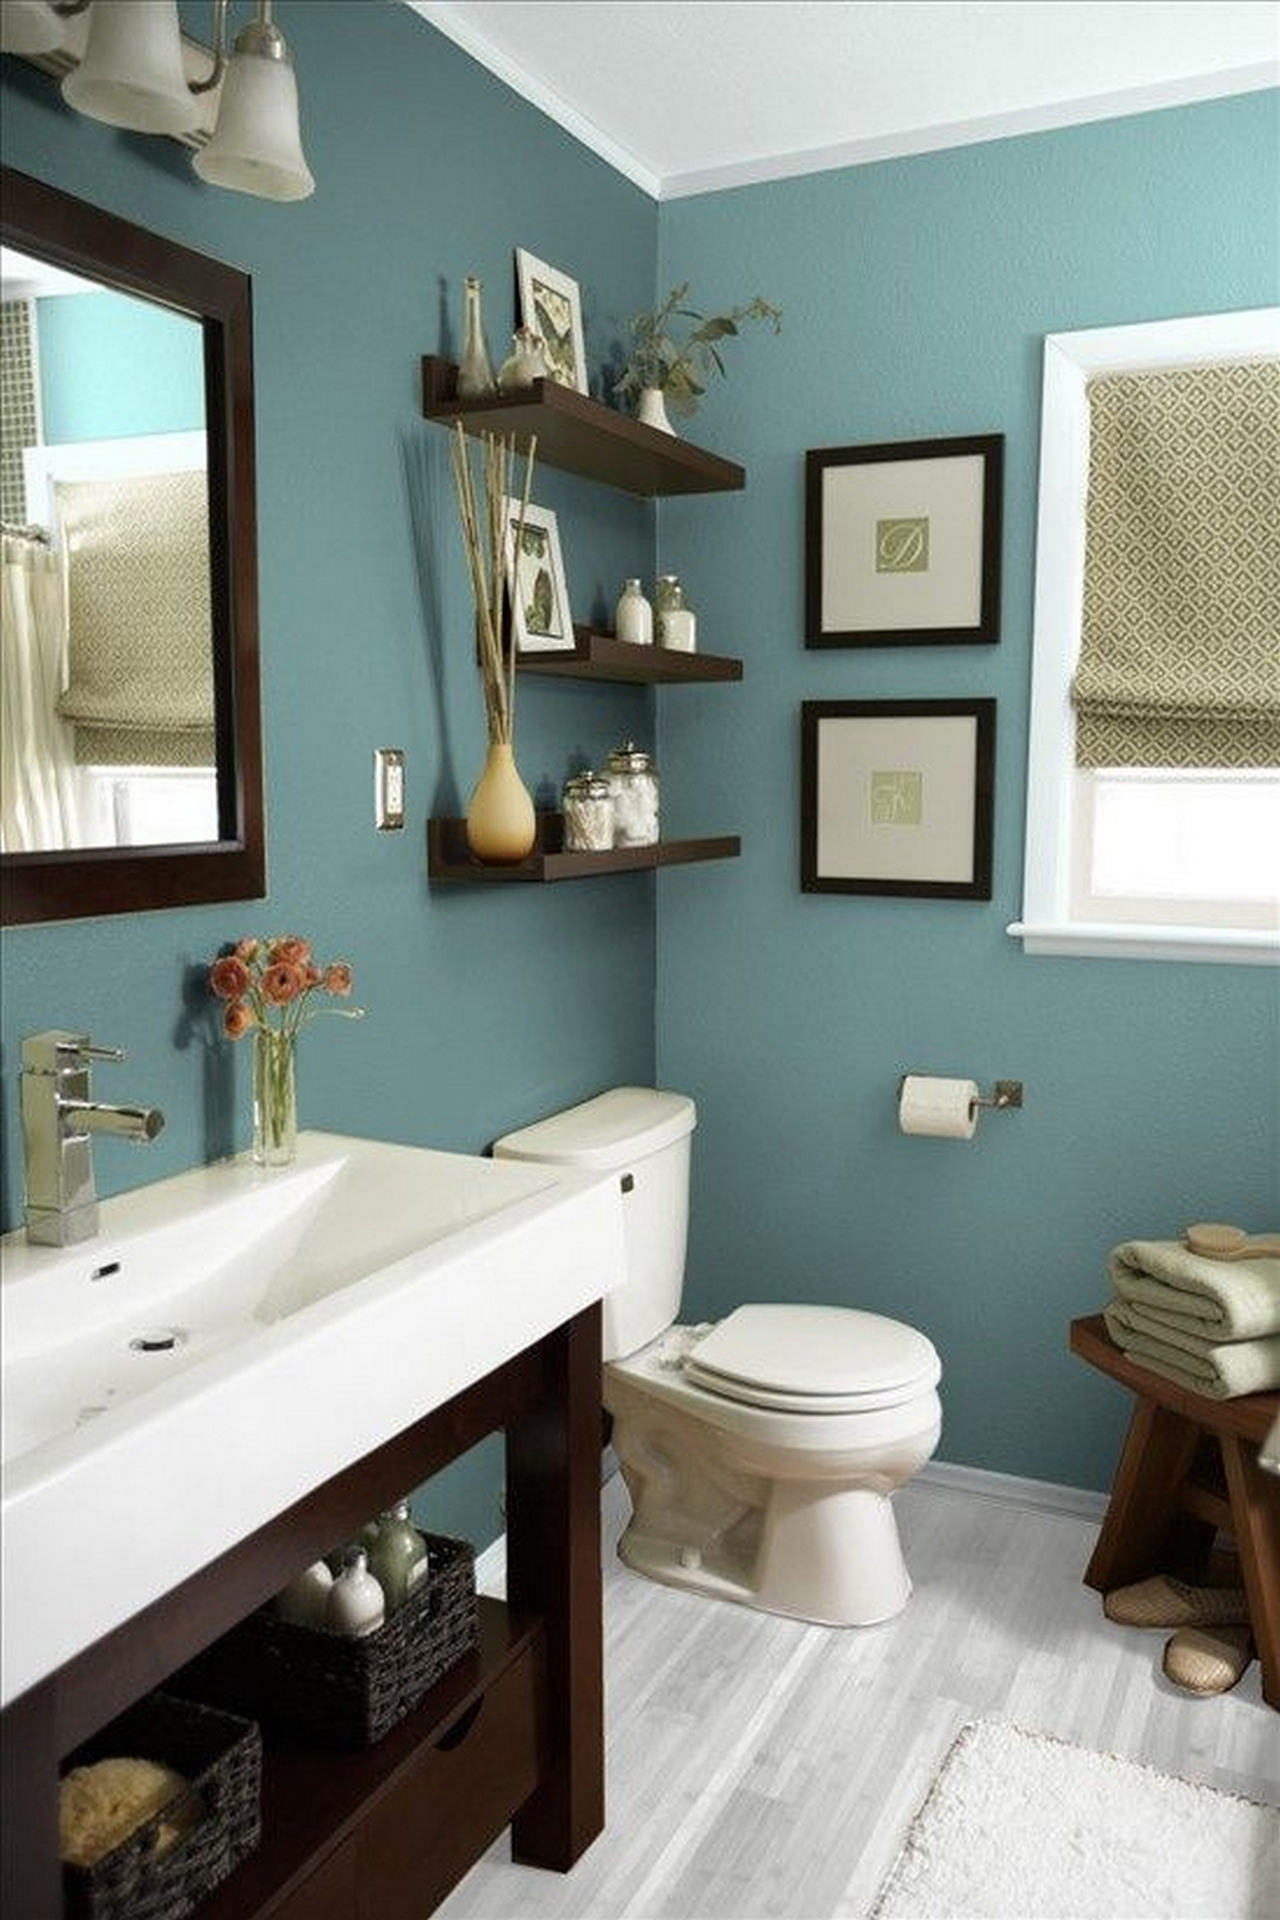 bathroom decorating ideas 13. chic and calming blue design theme MFQGEYO